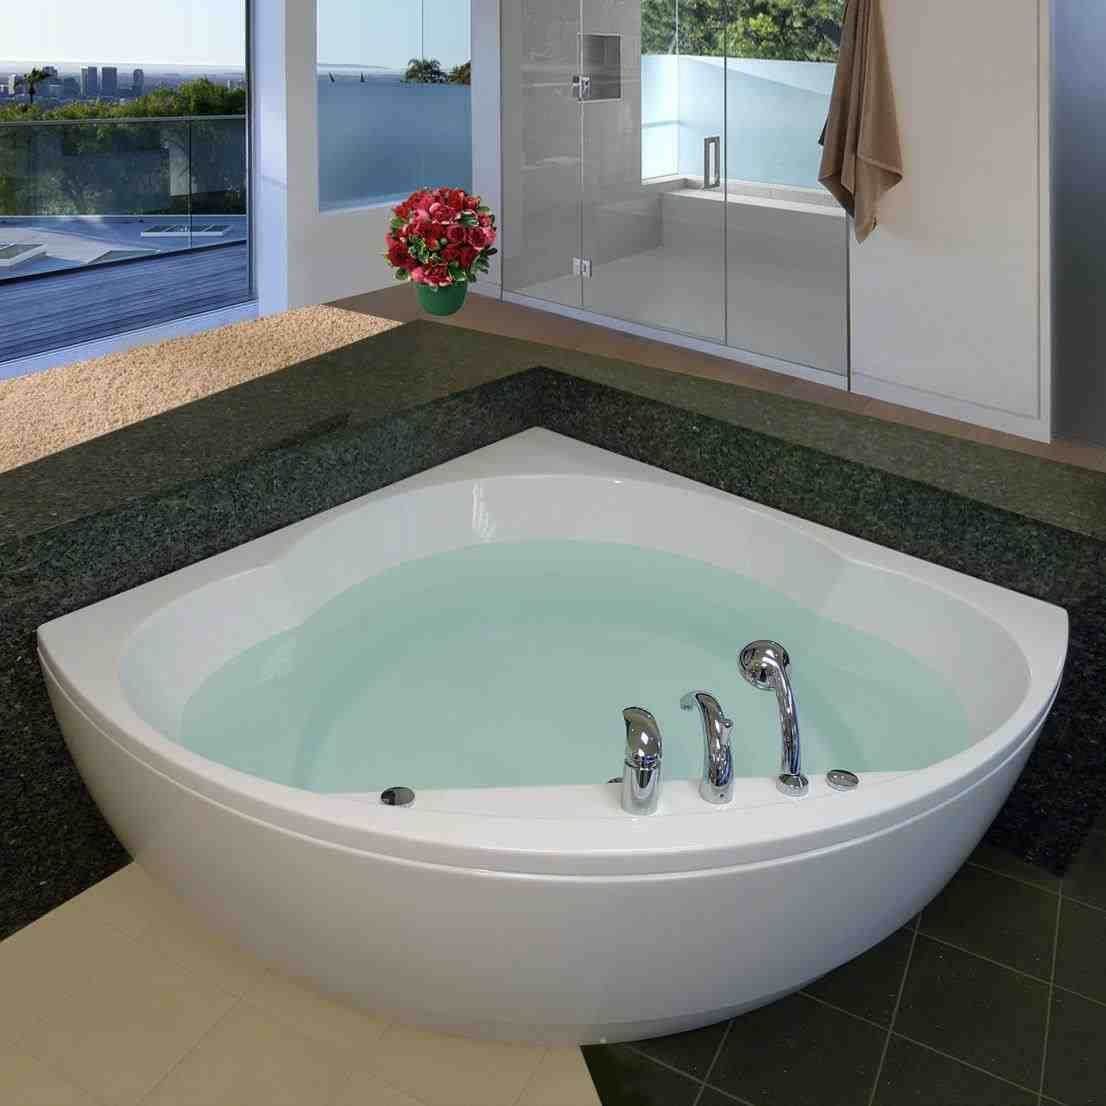 This deep soaking tub with jets - fascinating small soaker tub ...